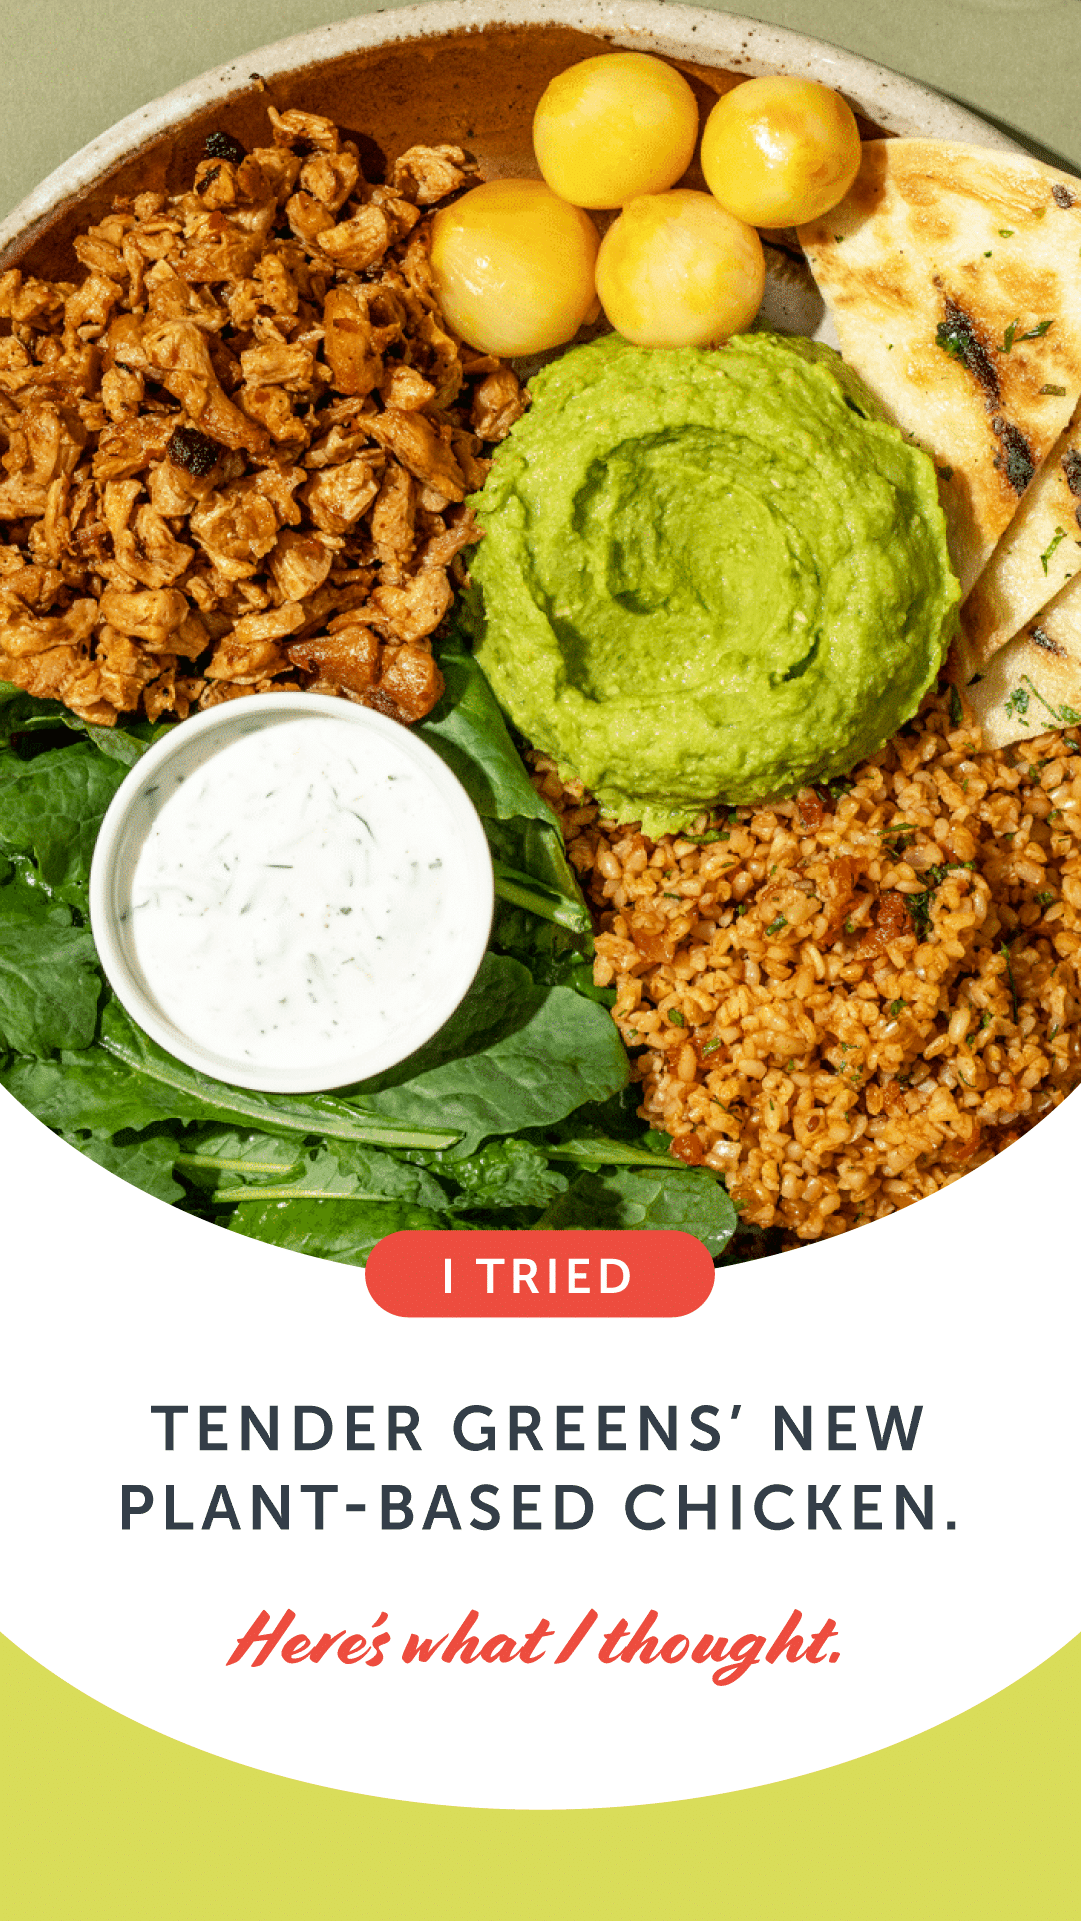 I Tried Tender Greens' New Plant-Based Chicken. Here's What I Thought.